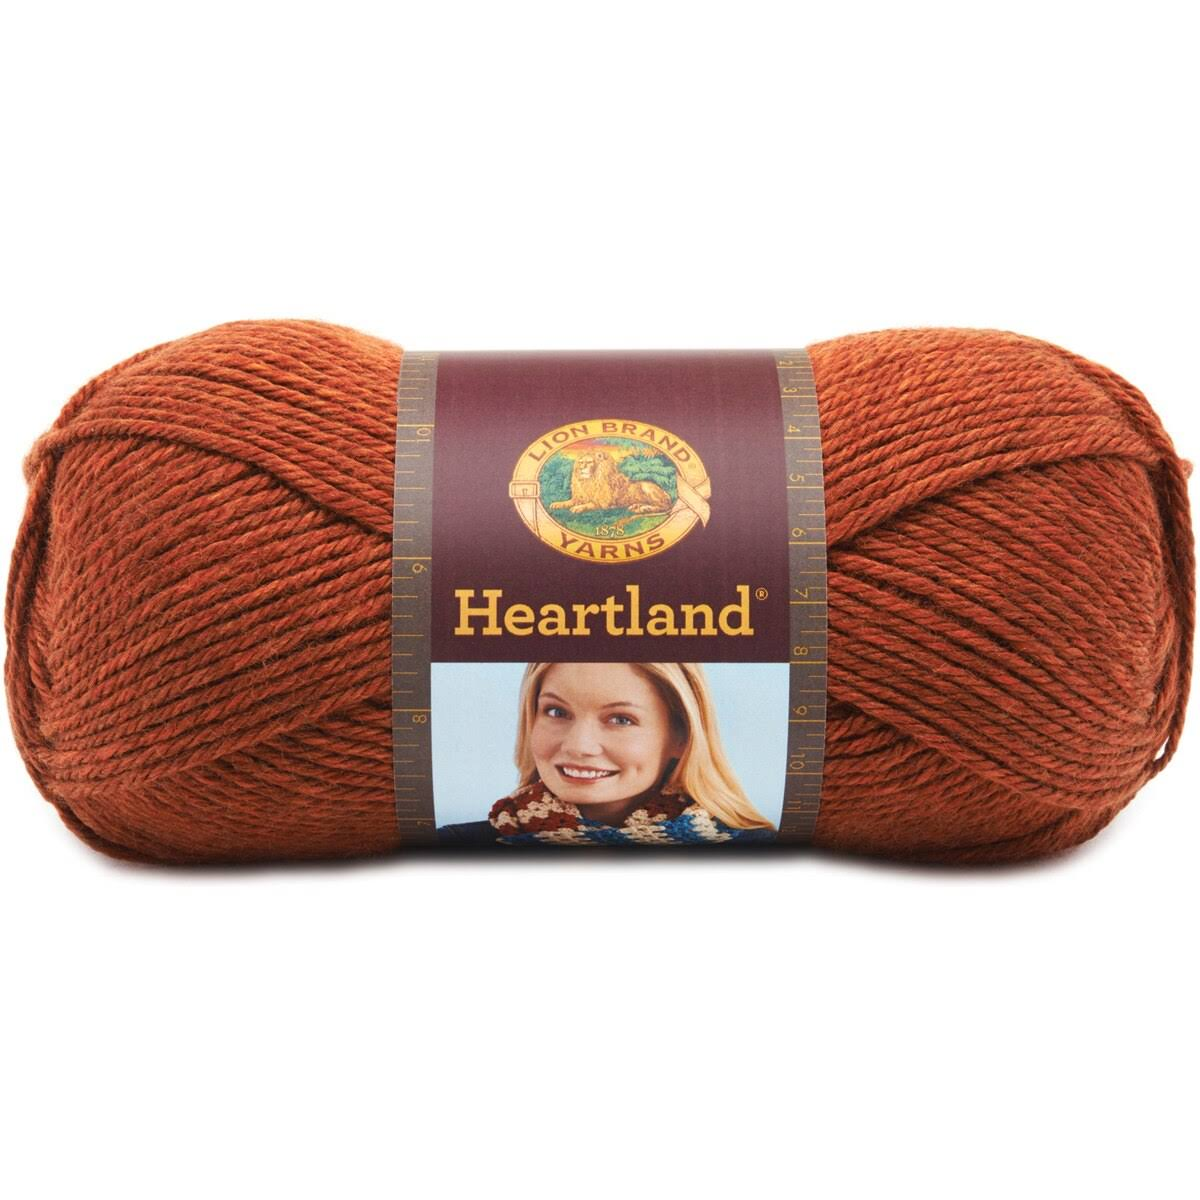 Lion Brand Heartland Yarn - Yosemite, 251yds